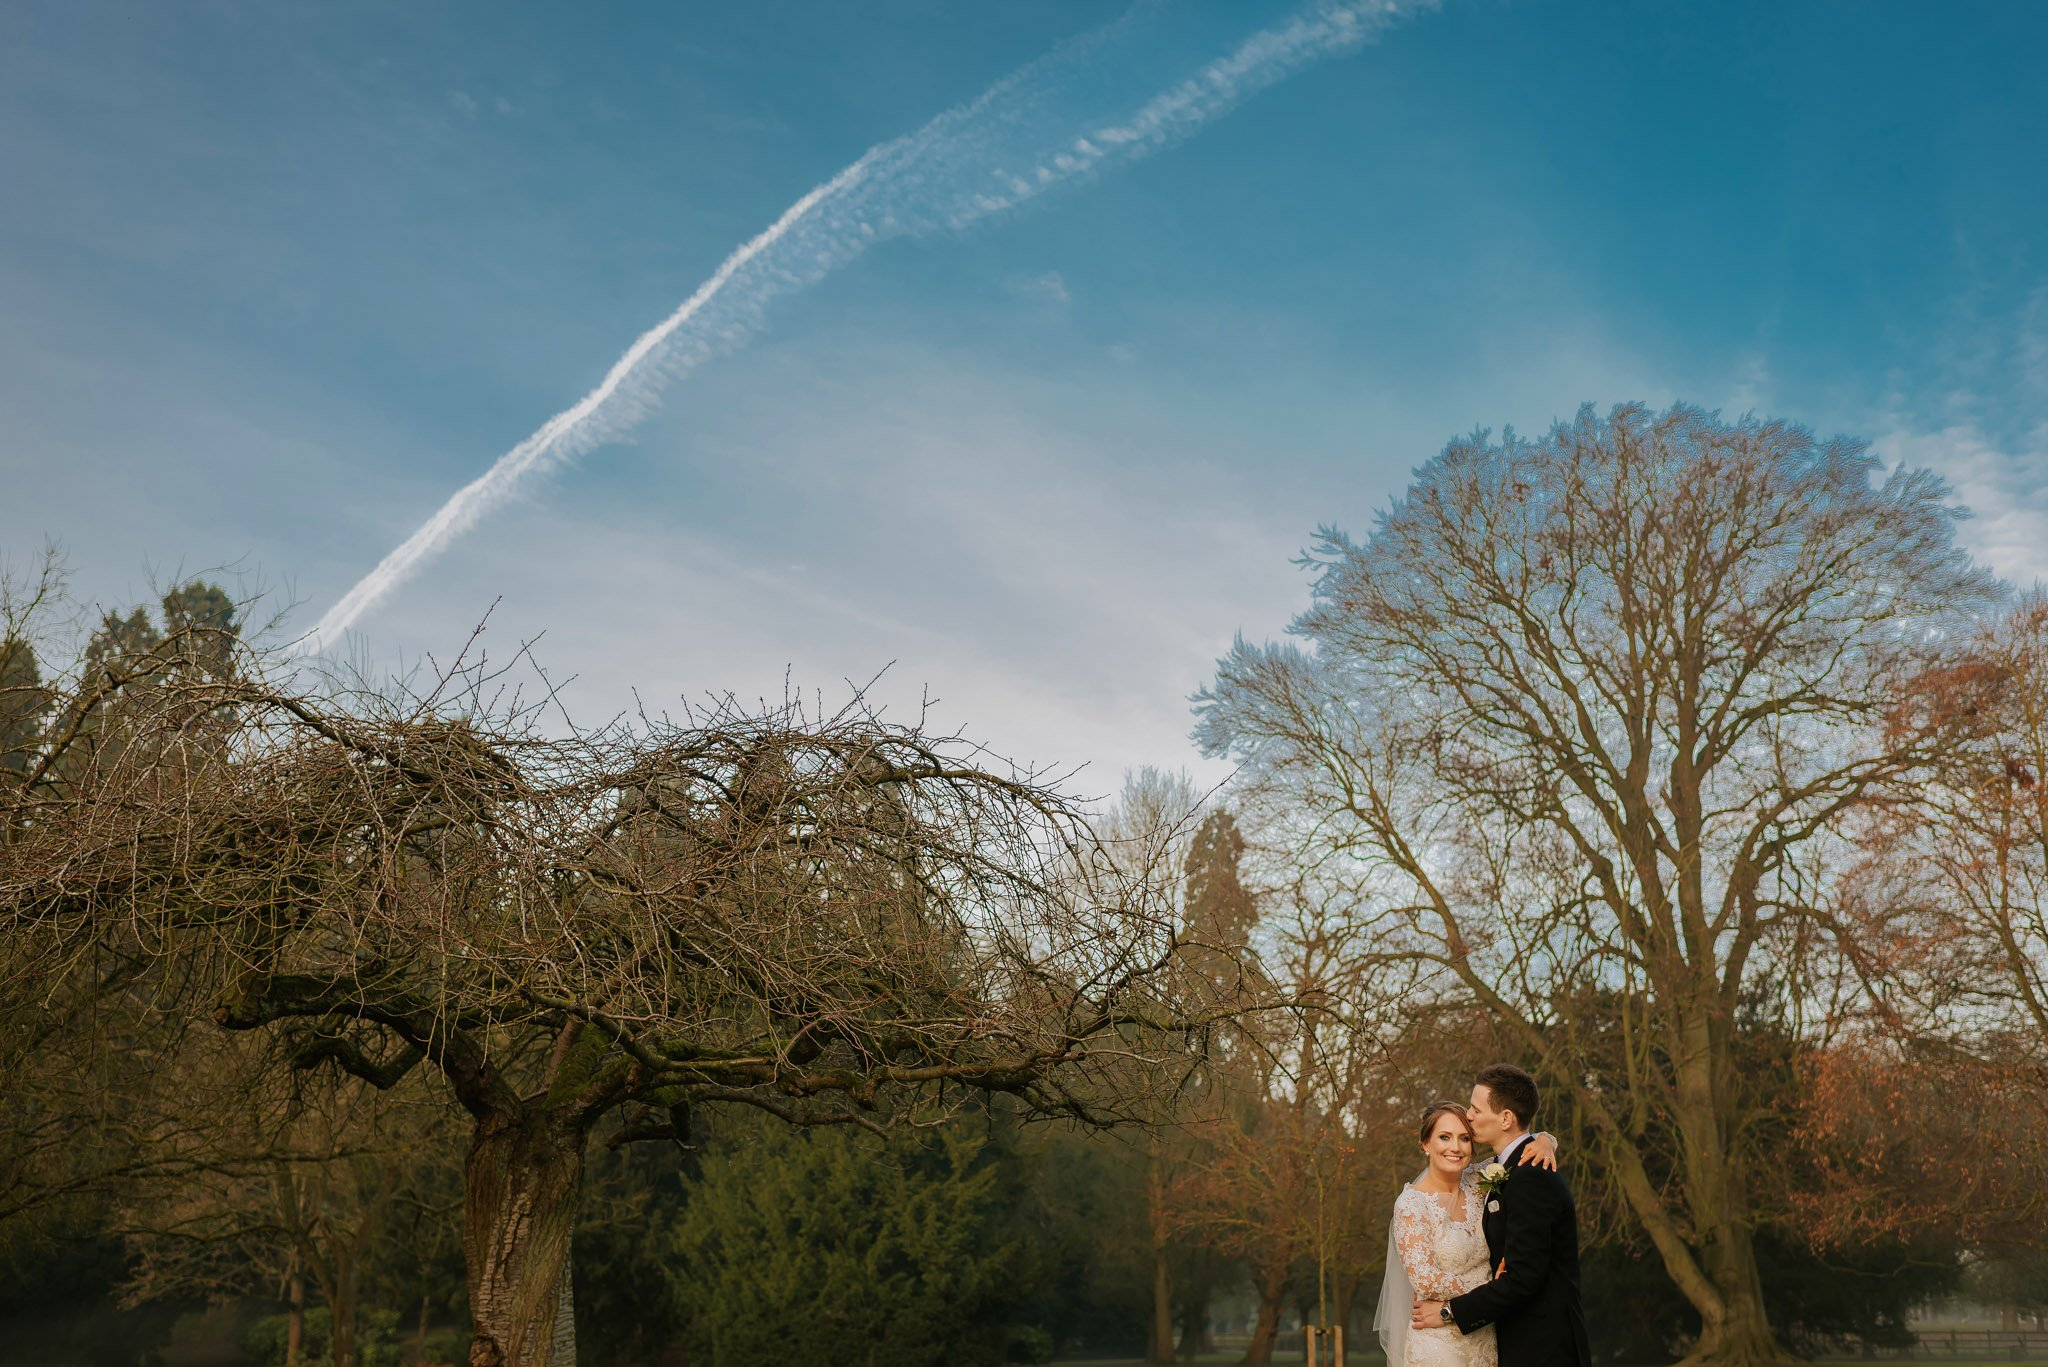 Coombe Abbey wedding in Coventry, Warwickshire - Sam + Matt 30